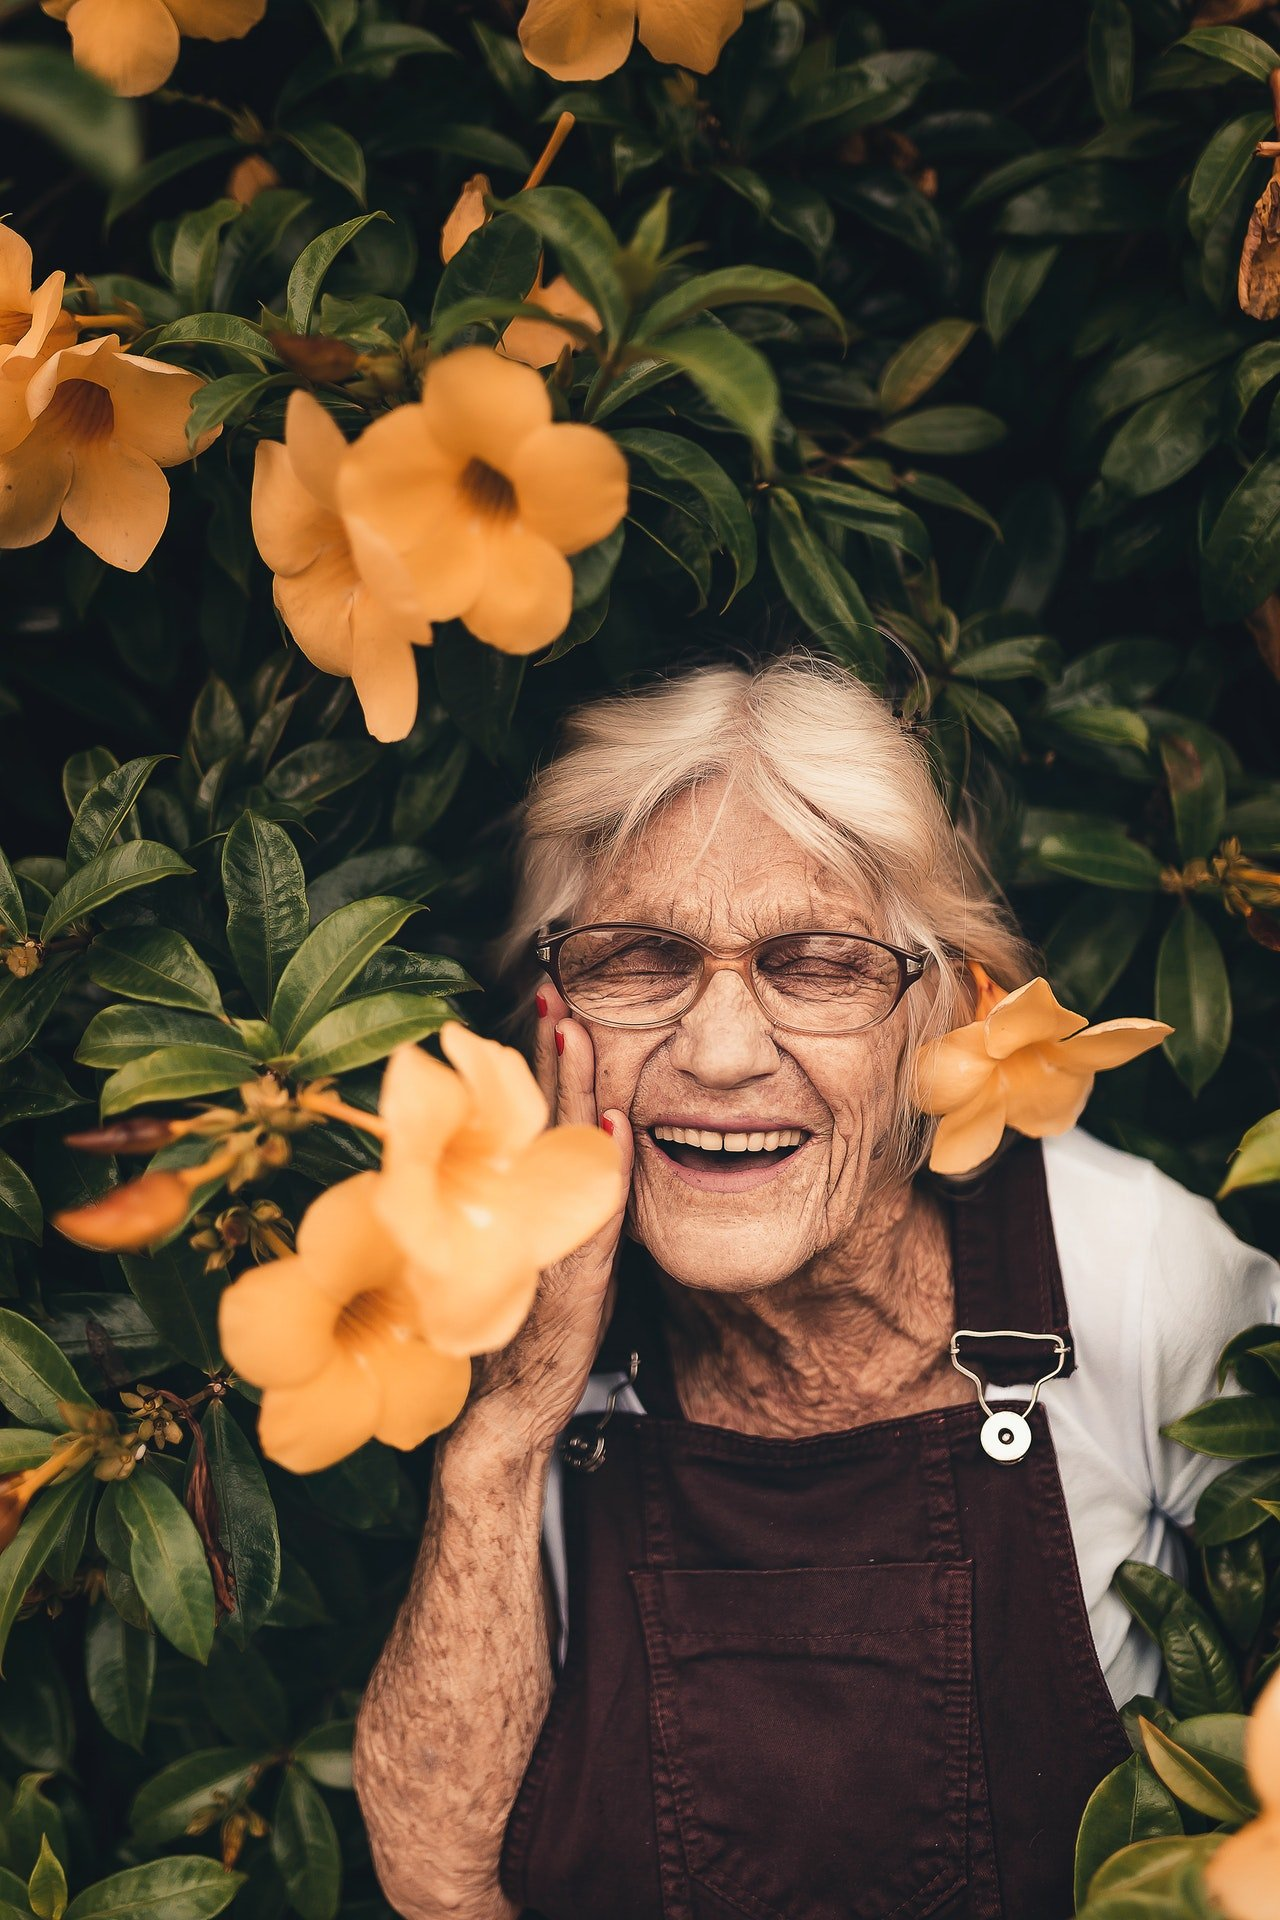 Photo of a woman smiling in the garden | Photo: Pexels